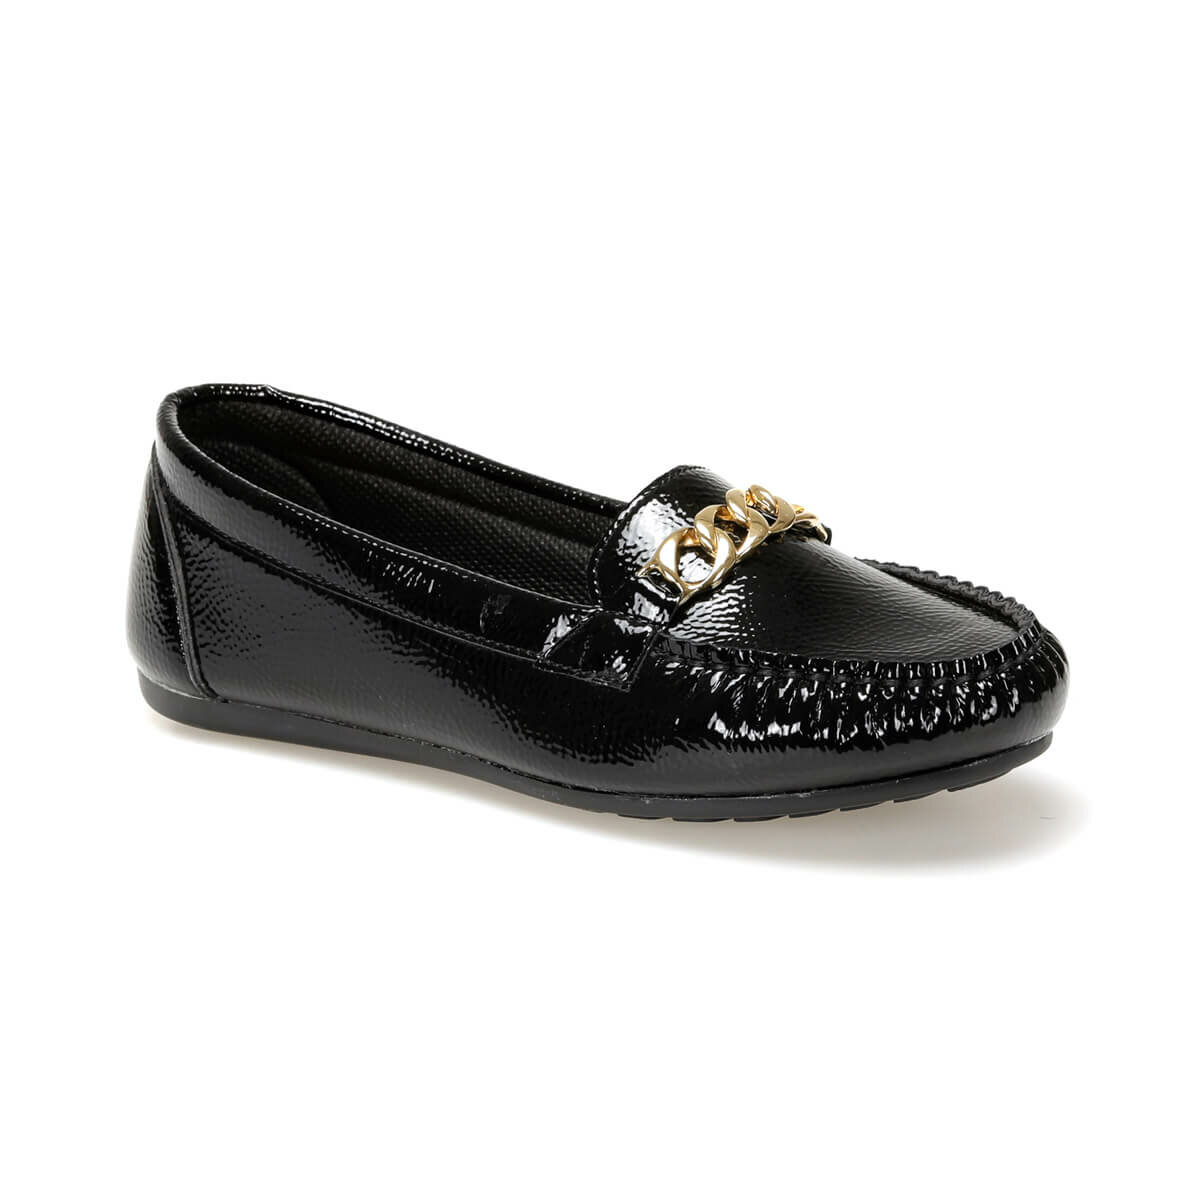 FLO DW19006R Black Women Loafer Shoes Miss F